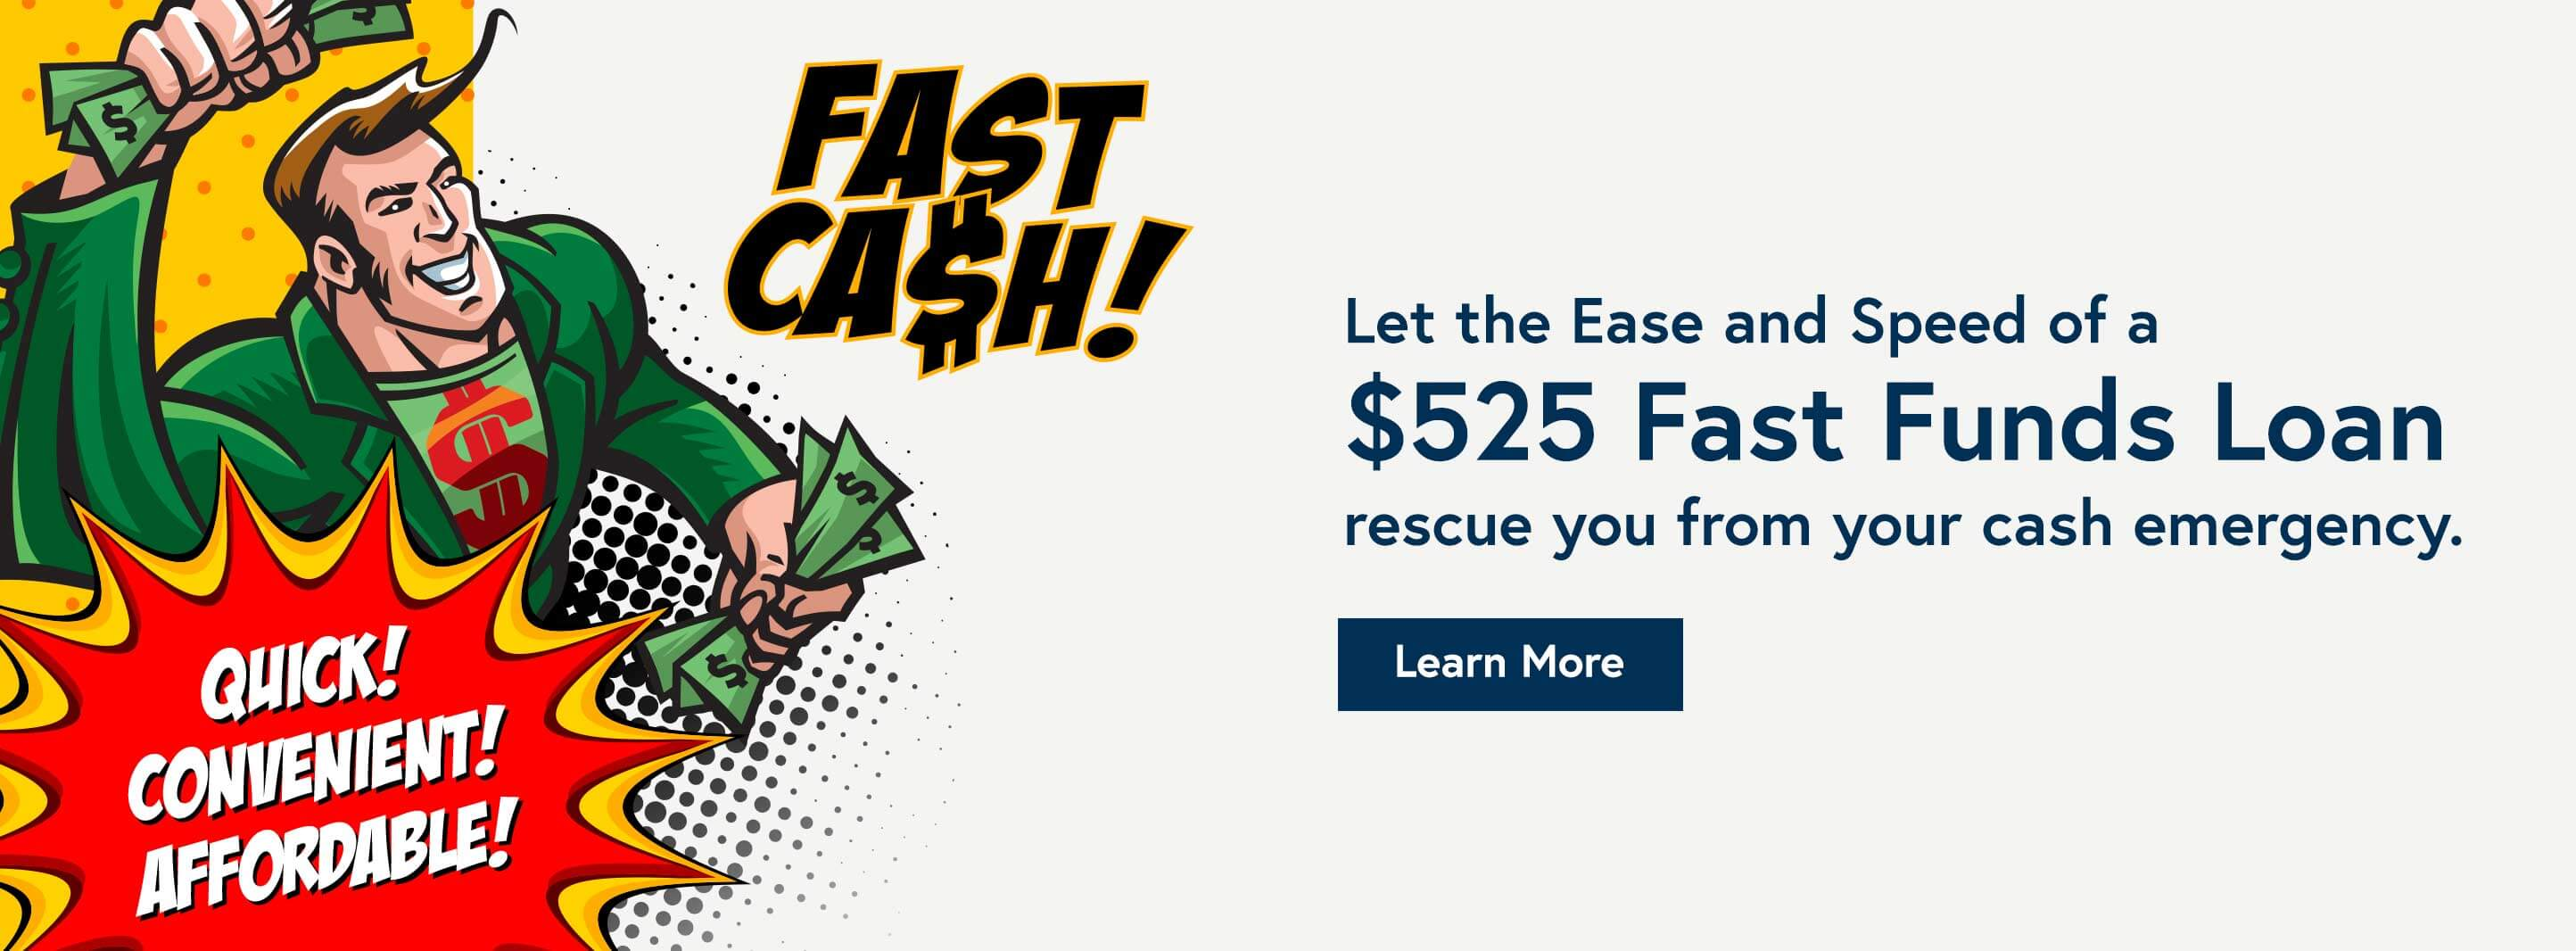 Fast Cash. Quick convenient affordable. Let the ease and speed of a $525 fast fund loan rescue you from your cash emergency. Learn more.